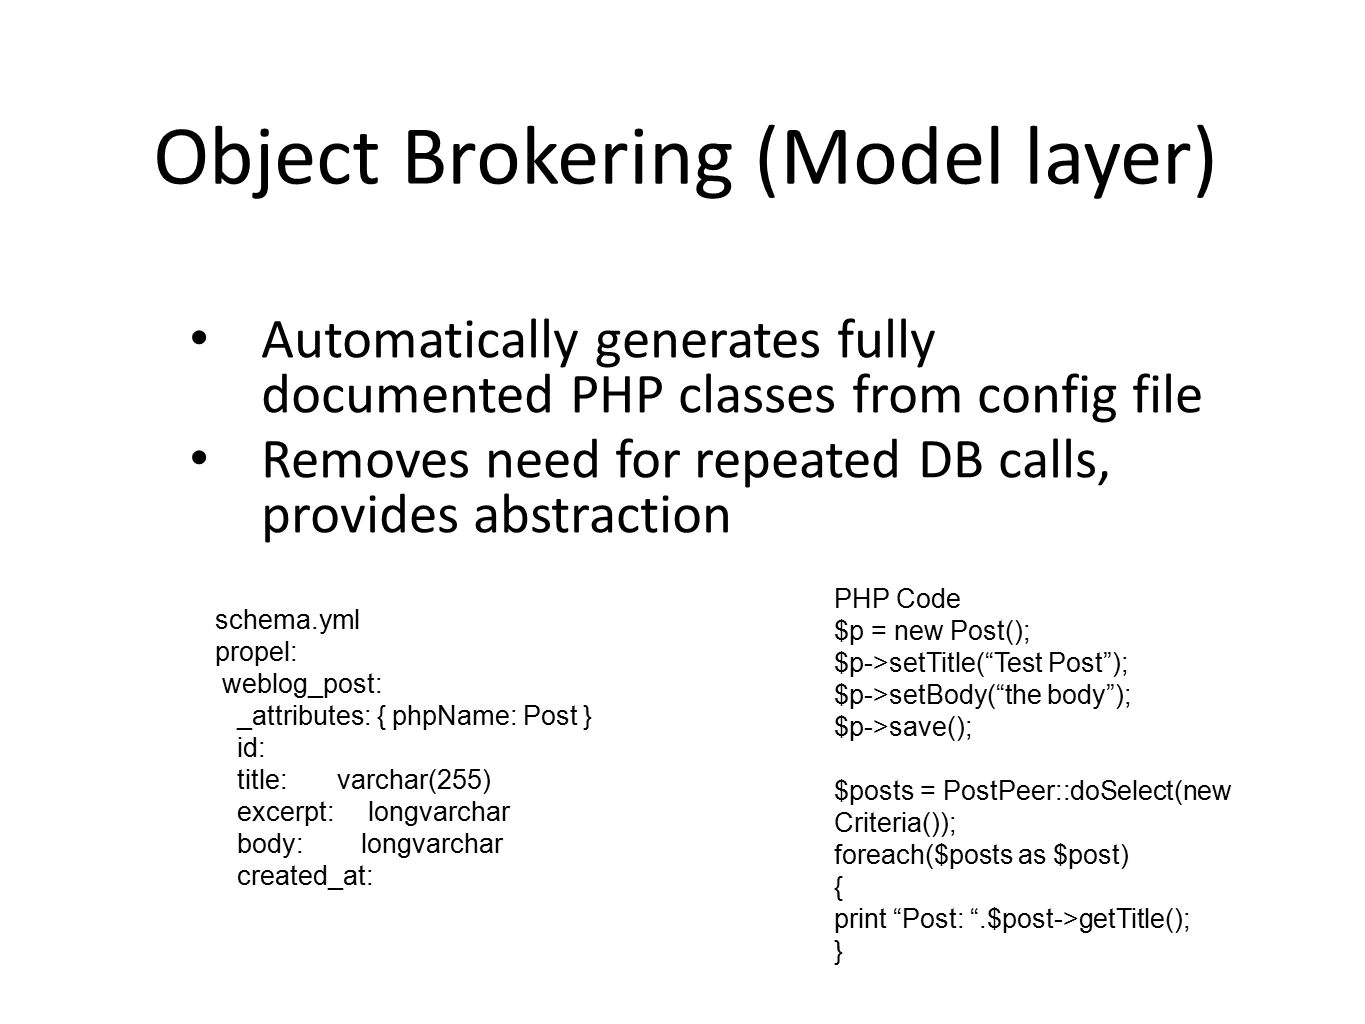 Object Brokering (Model layer) Automatically generates fully documented PHP classes from config file Removes need for repeated DB calls, provides abstraction schema.yml propel: weblog_post: _attributes: { phpName: Post } id: title: varchar(255) excerpt: longvarchar body: longvarchar created_at: PHP Code $p = new Post(); $p->setTitle( Test Post ); $p->setBody( the body ); $p->save(); $posts = PostPeer::doSelect(new Criteria()); foreach($posts as $post) { print Post: .$post->getTitle(); }